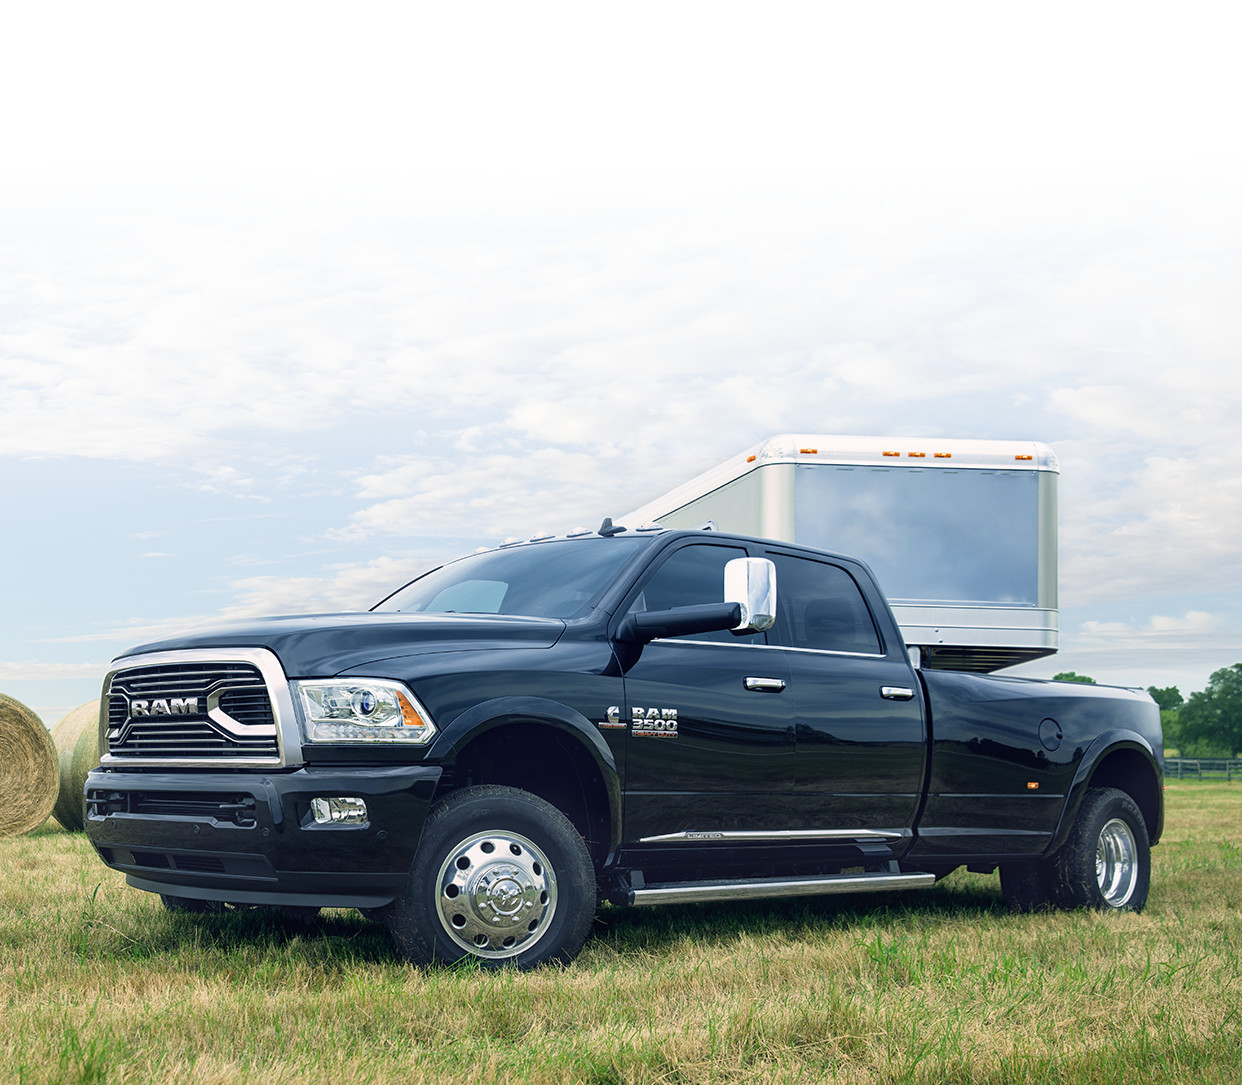 2018 RAM 3500 truck towing side view